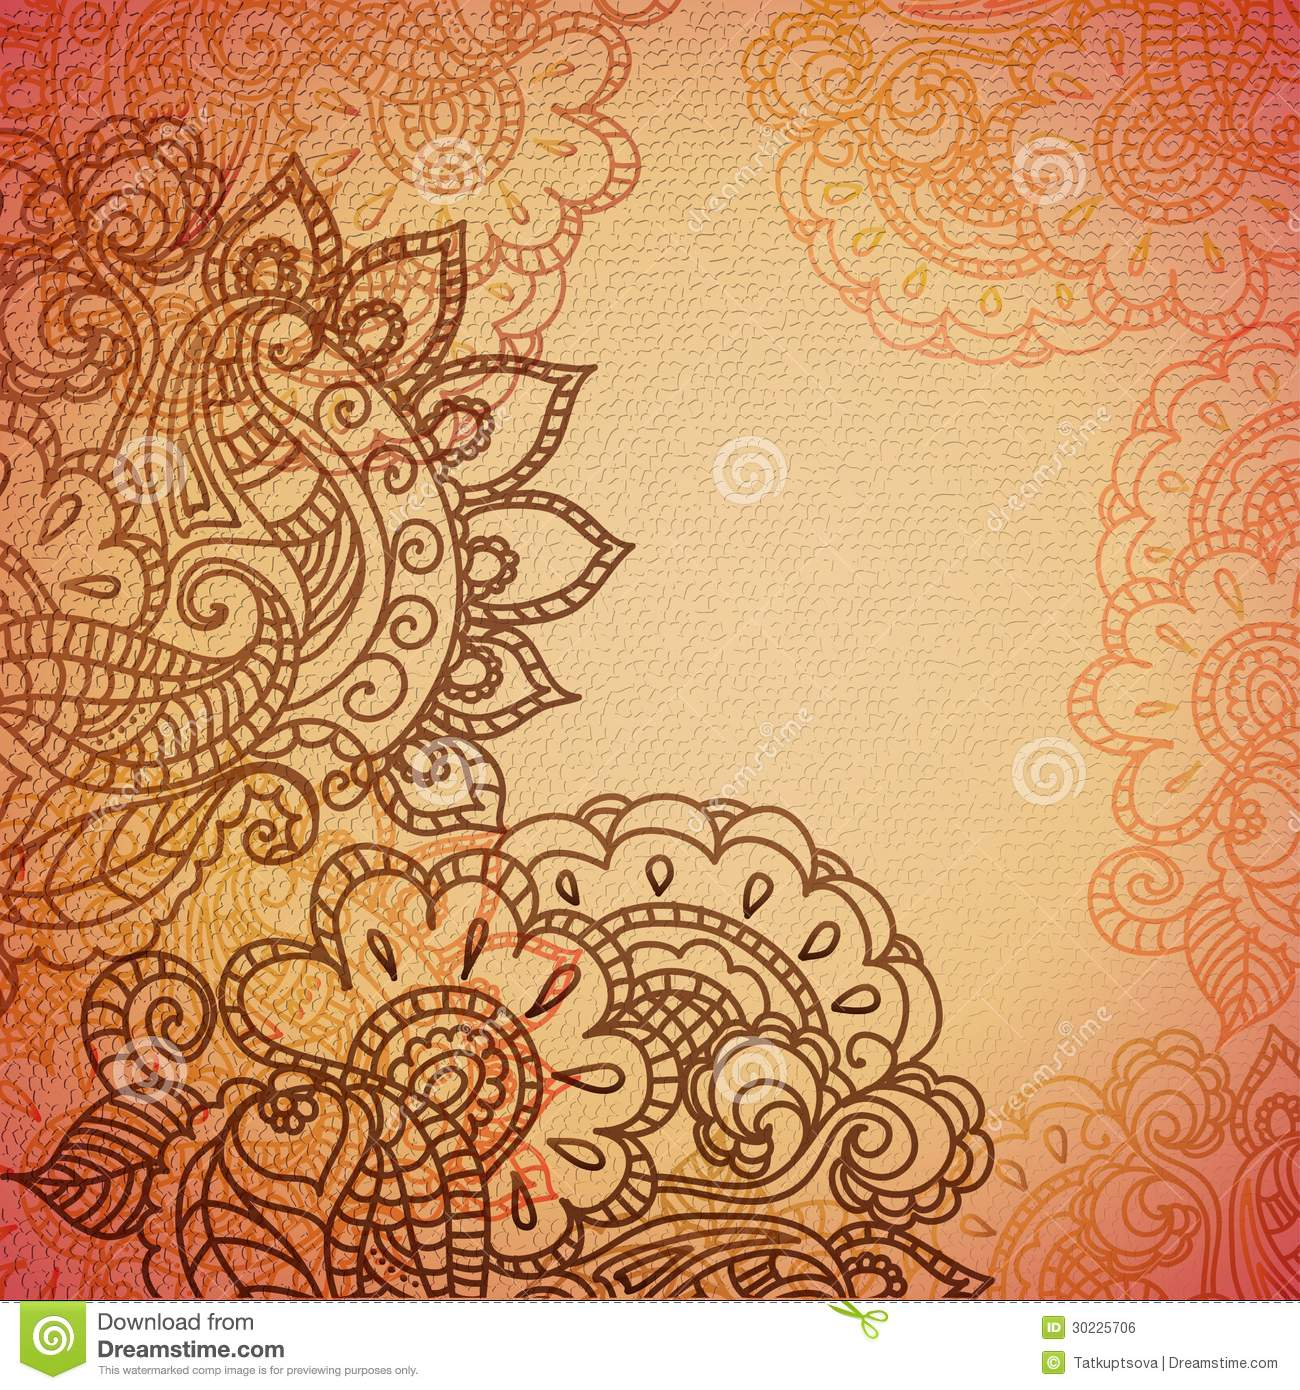 Vintage paisley ornament background stock vector image for Image de fond